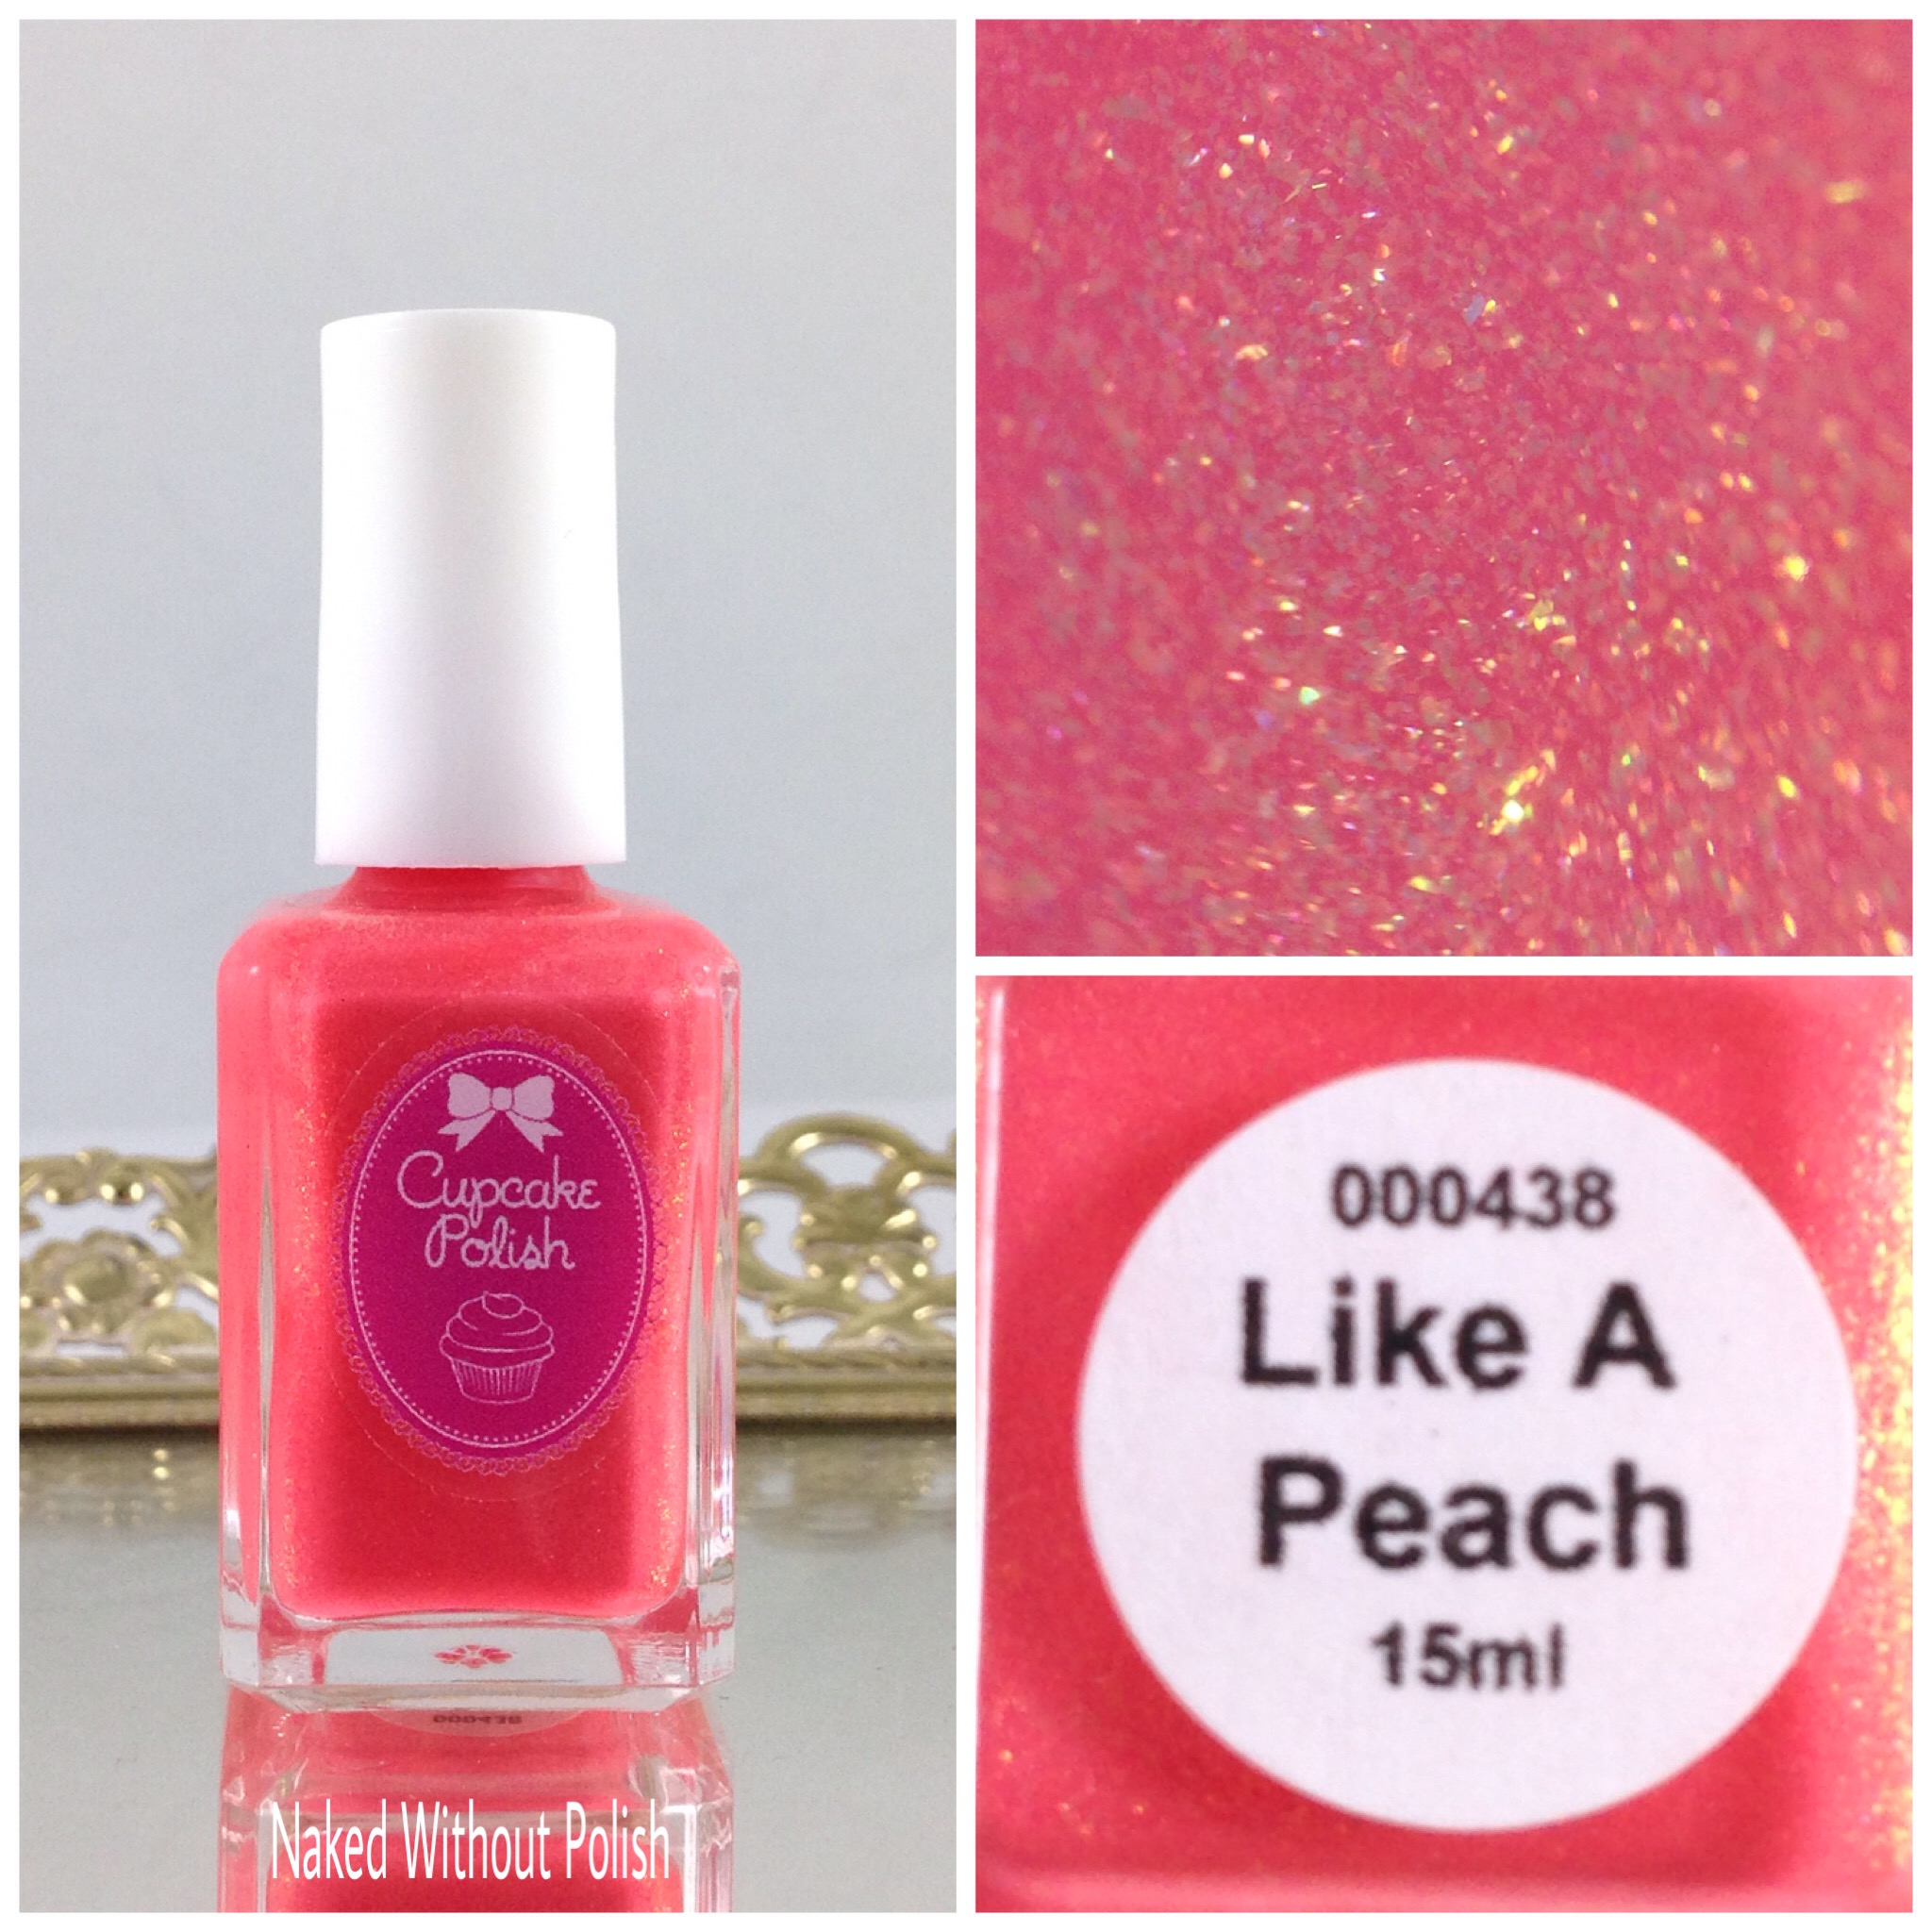 Cupcake-Polish-Like-a-Peach-1